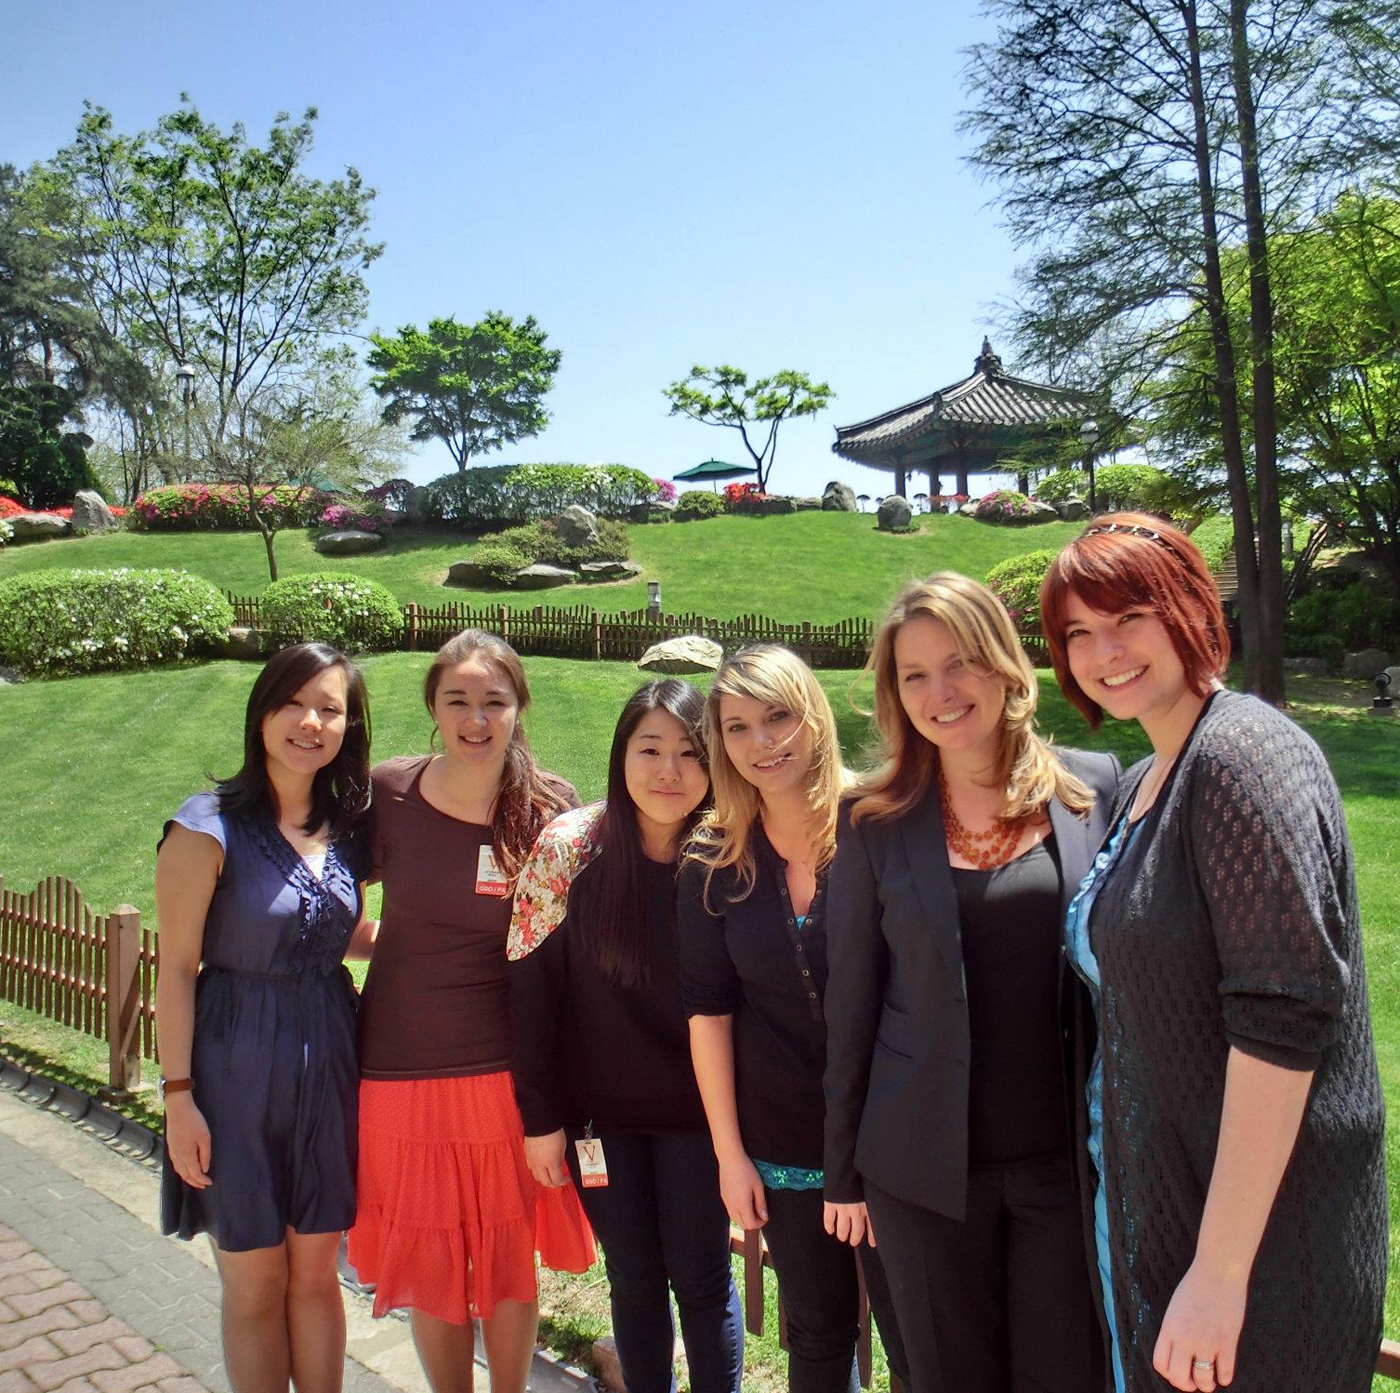 Samantha Marcoux (far right) and friends at a park in Seoul, South Korea